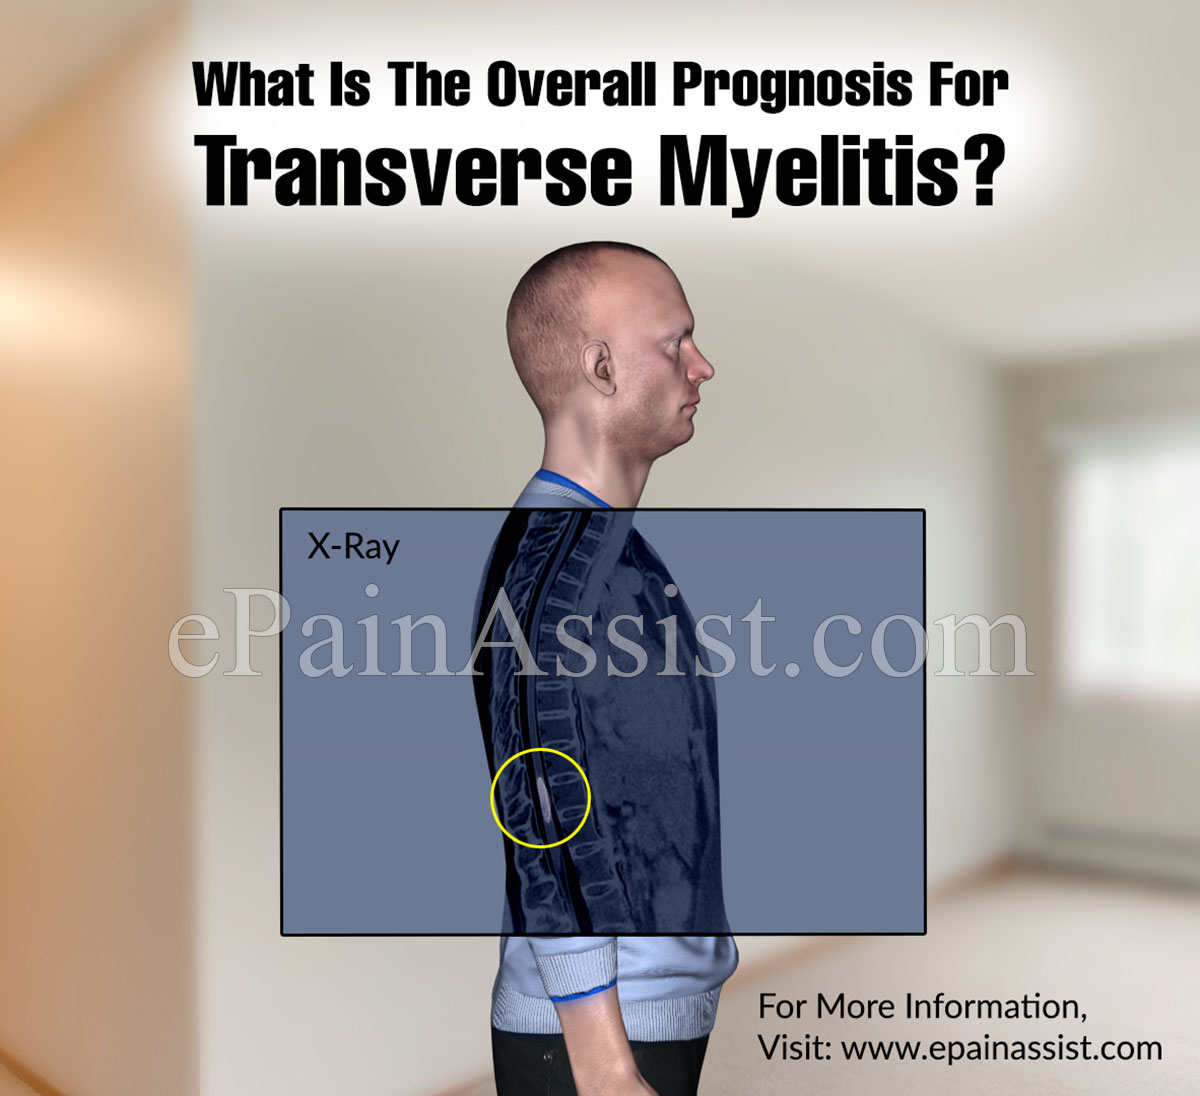 What is the Overall Prognosis for Transverse Myelitis?